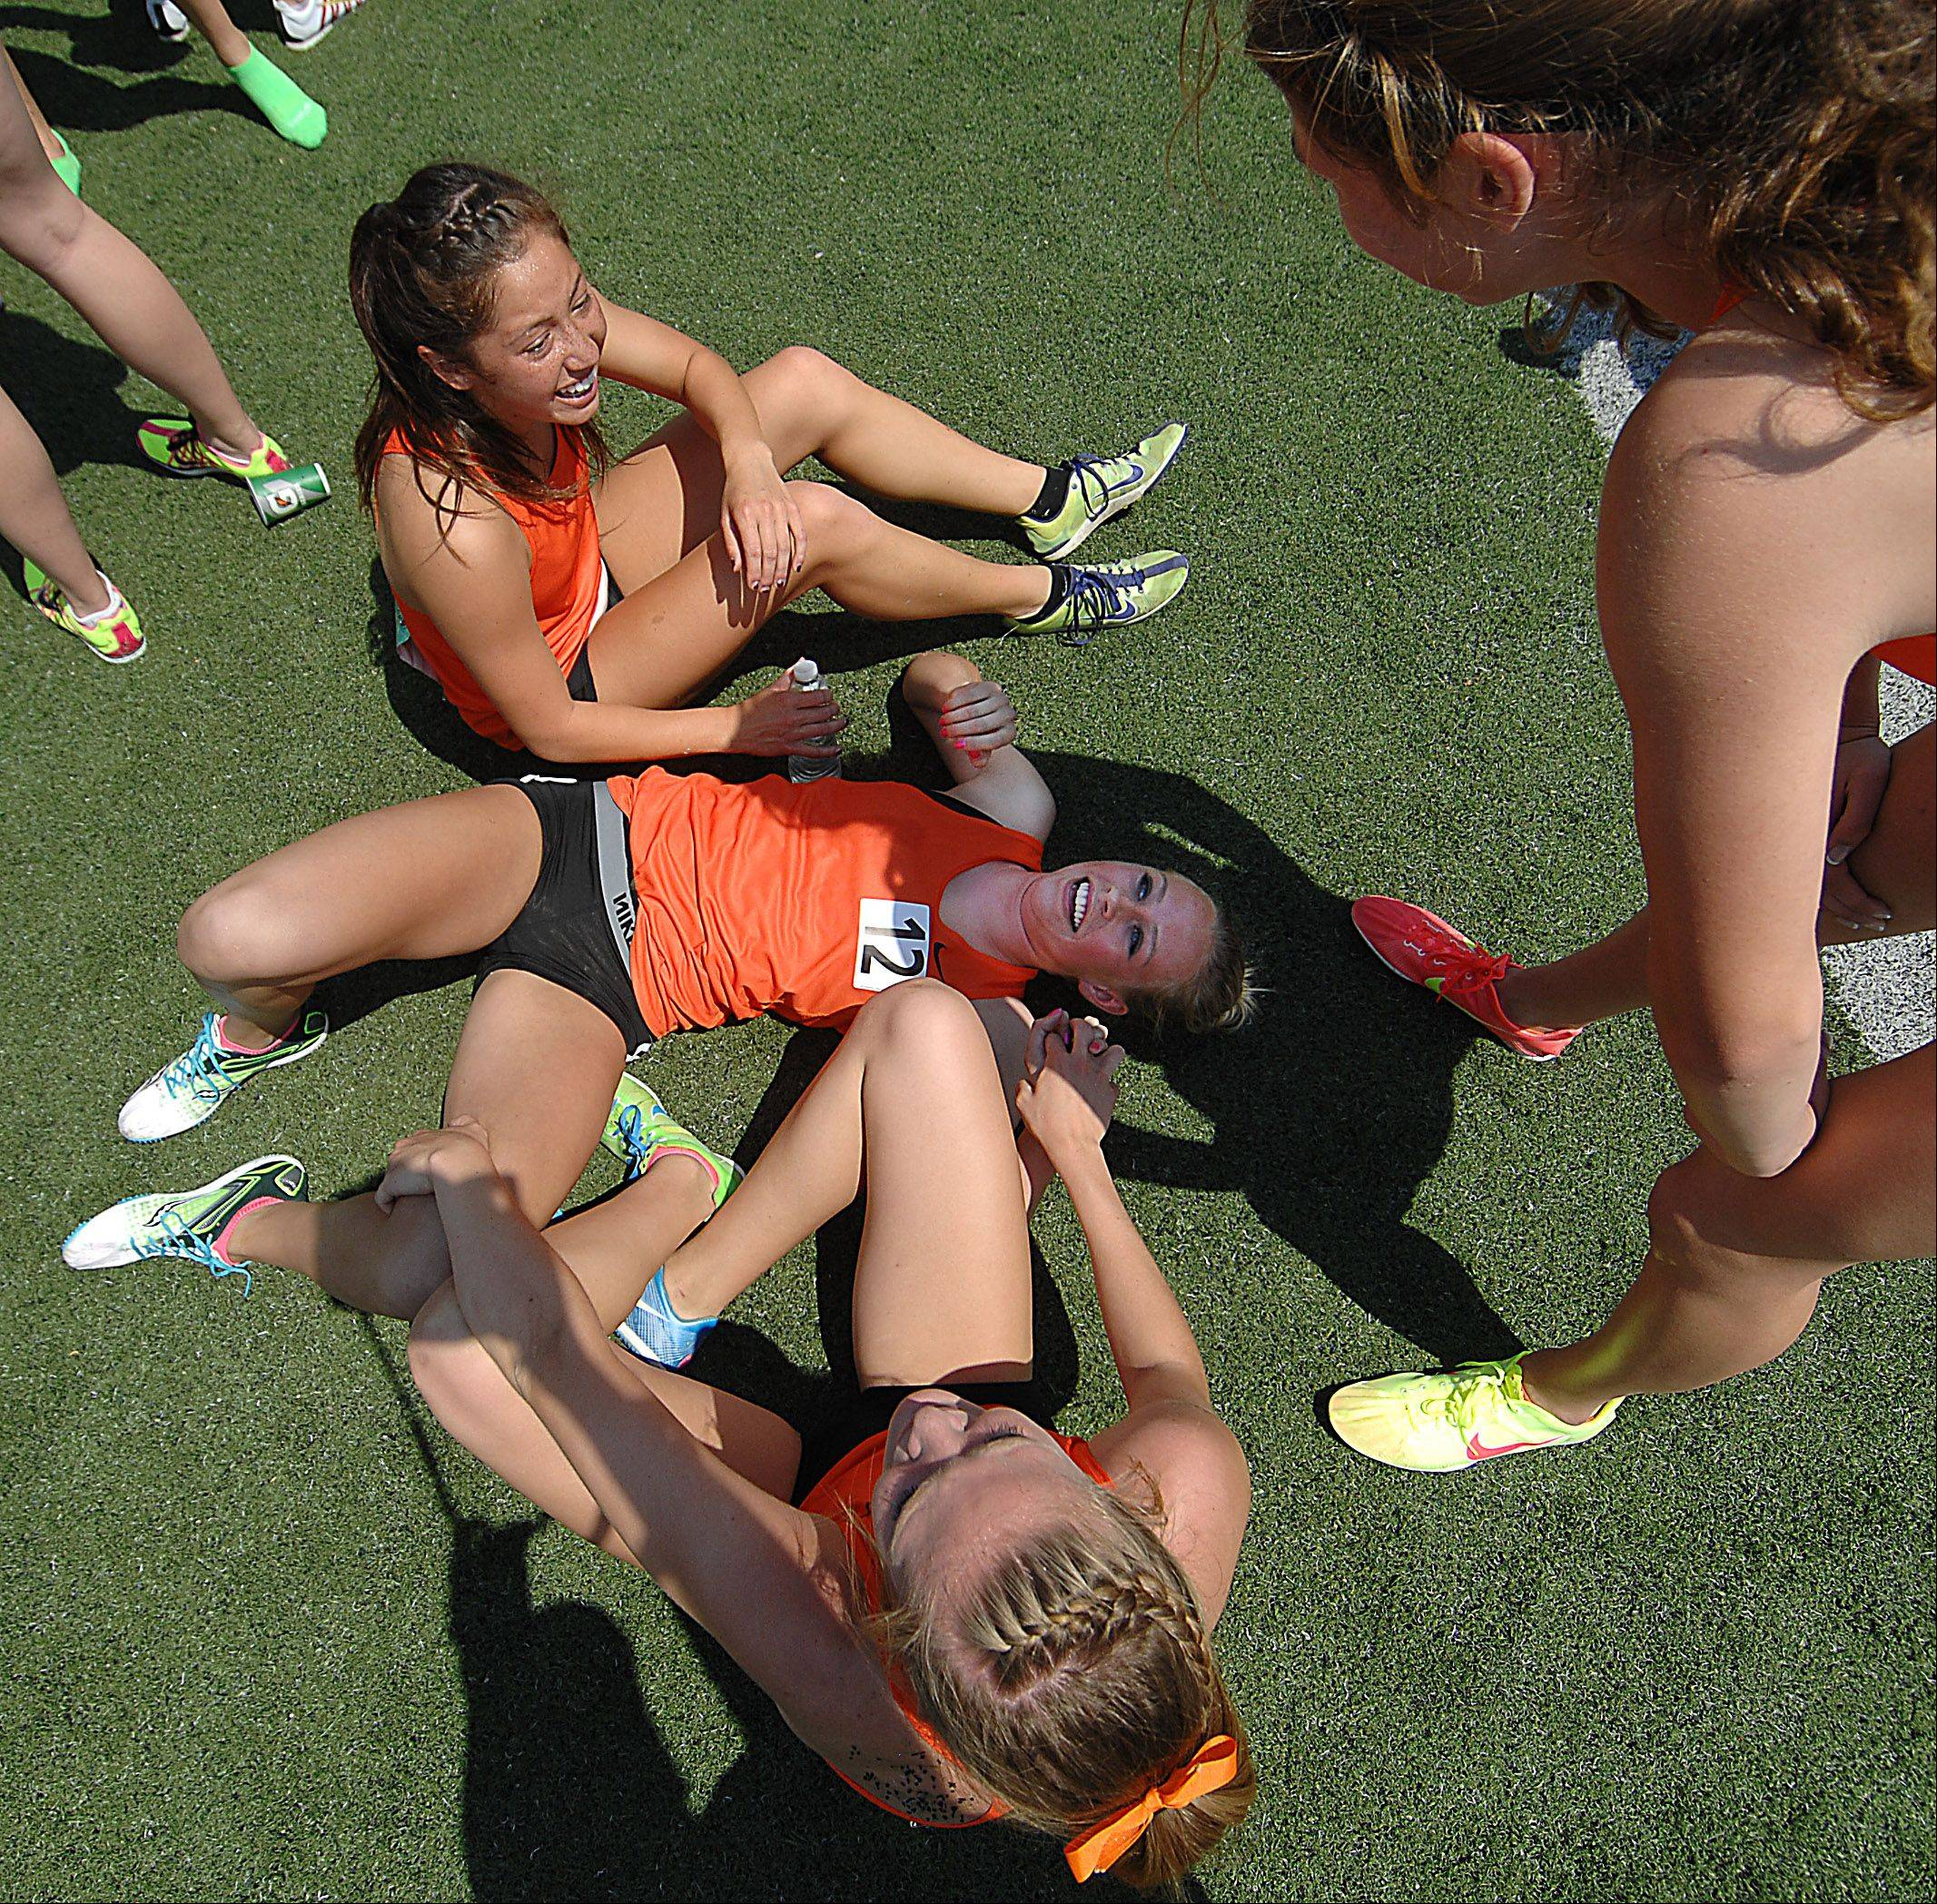 John Starks/jstarks@dailyherald.com � Wheaton Warrenville South's McKenna Kiple lays on the ground as teammates Amy Yong, top, Hope Schmelzle, bottom, and Erin Hermann laugh with her after they set a meet record in the 3,200 meter relay Saturday at the Illinois High School Association girls state track and field finals at O'Brien Stadium at Eastern Illinois University in Charleston.